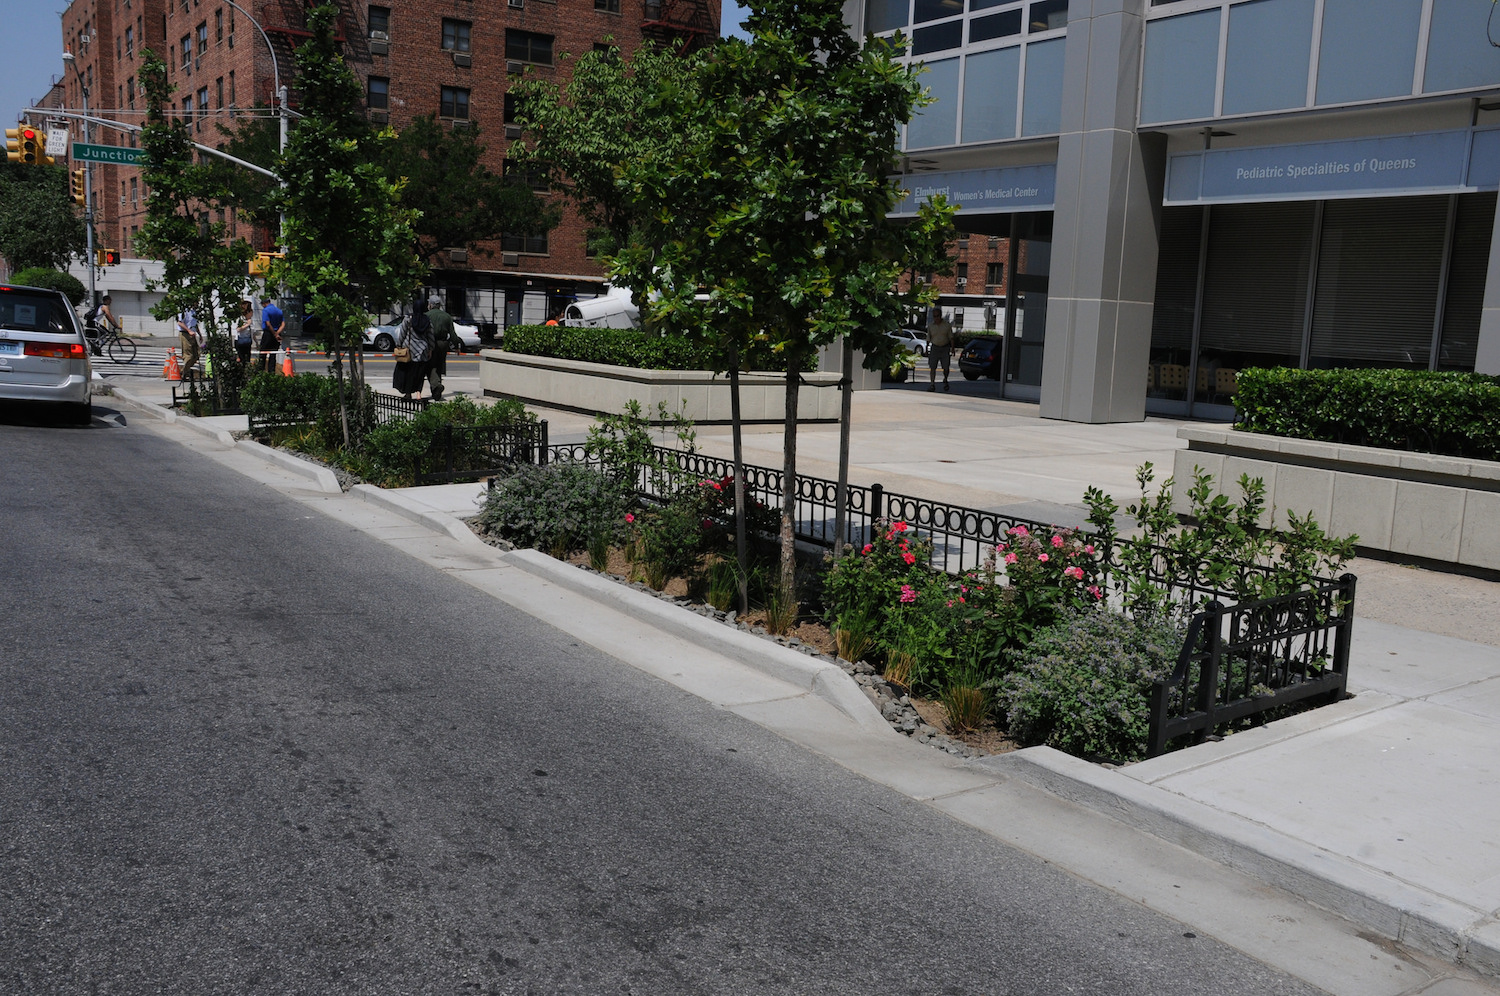 321 New Rain Gardens In Queens Will Help Clean Up Newtown